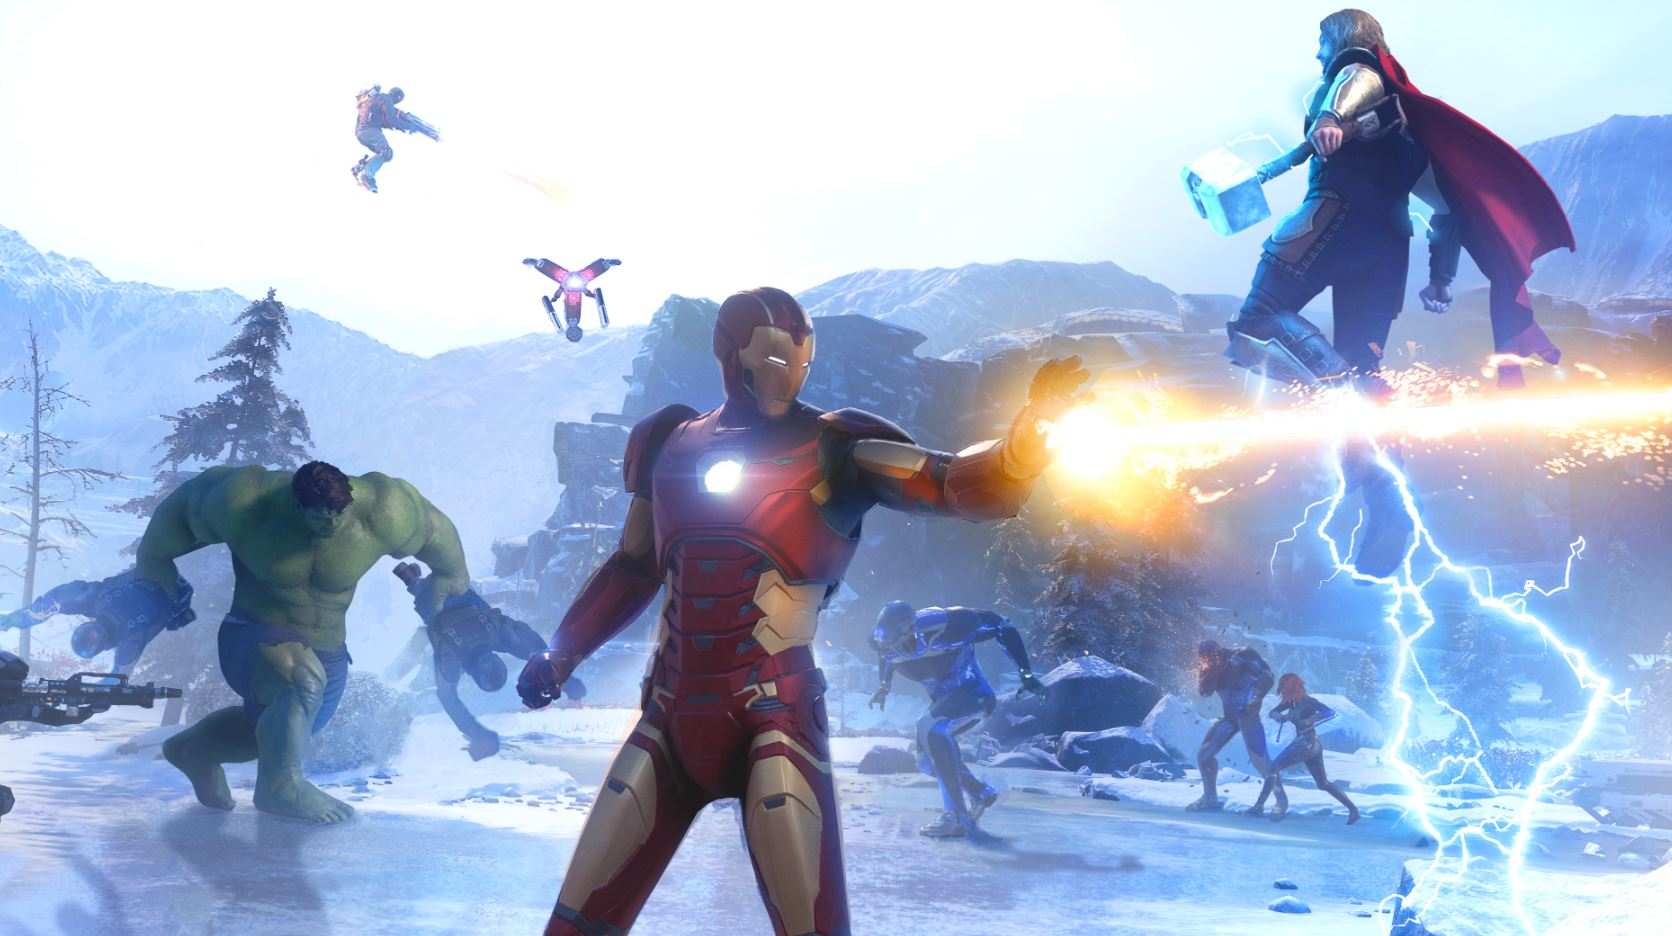 marvels-avengers-will-make-earning-xp-harder-when-ps5-version-launches-cosmetics-being-reworked-as-well